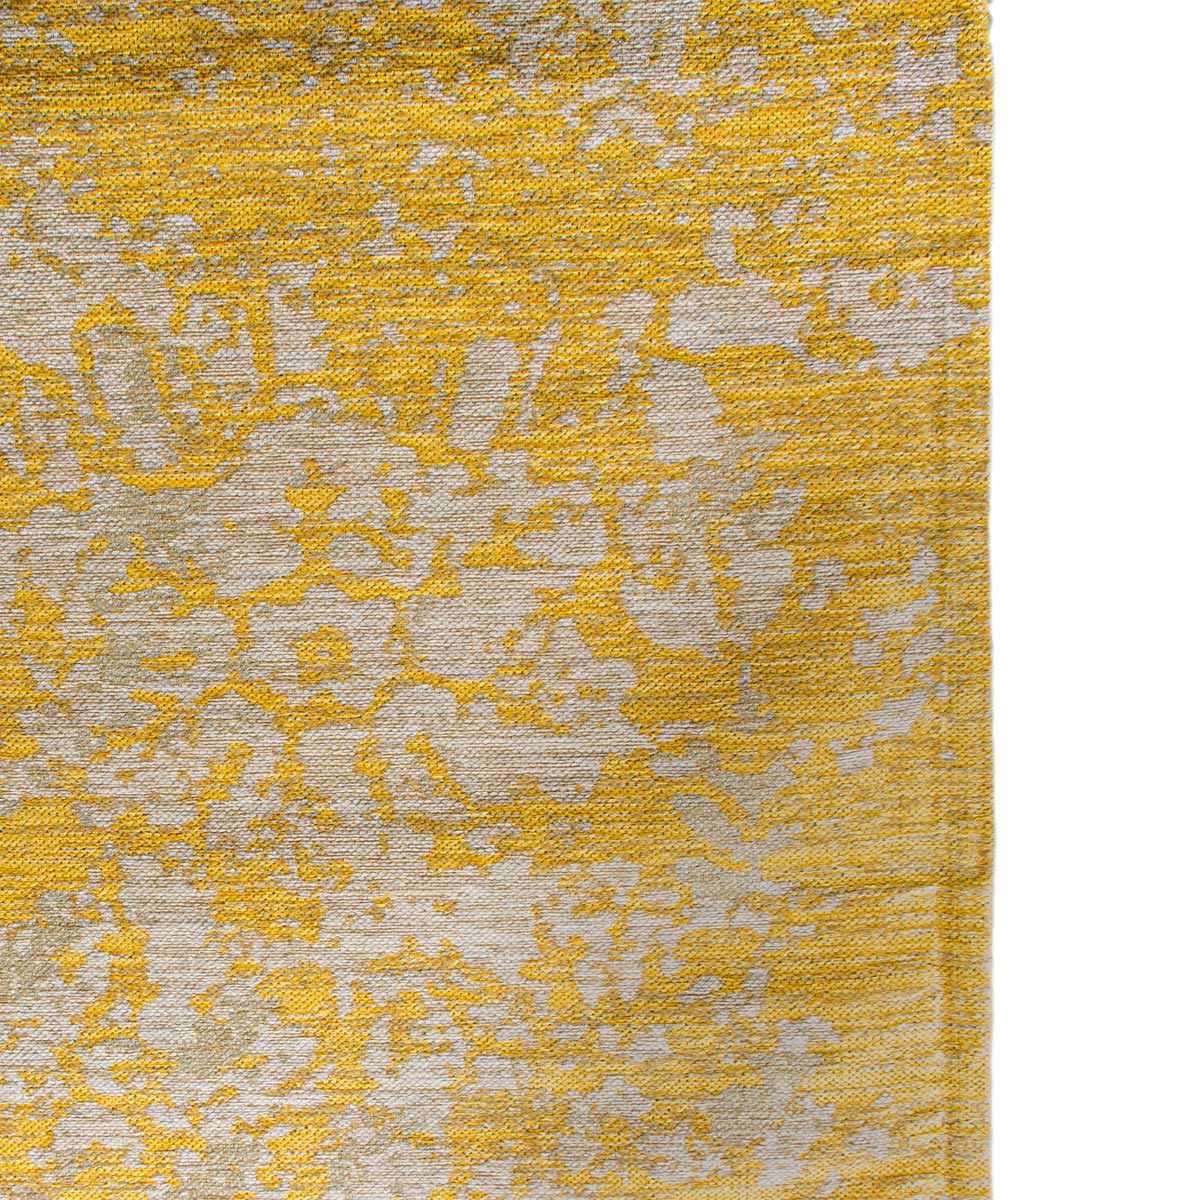 Marseille Rug 29 Yellow/Grey 5